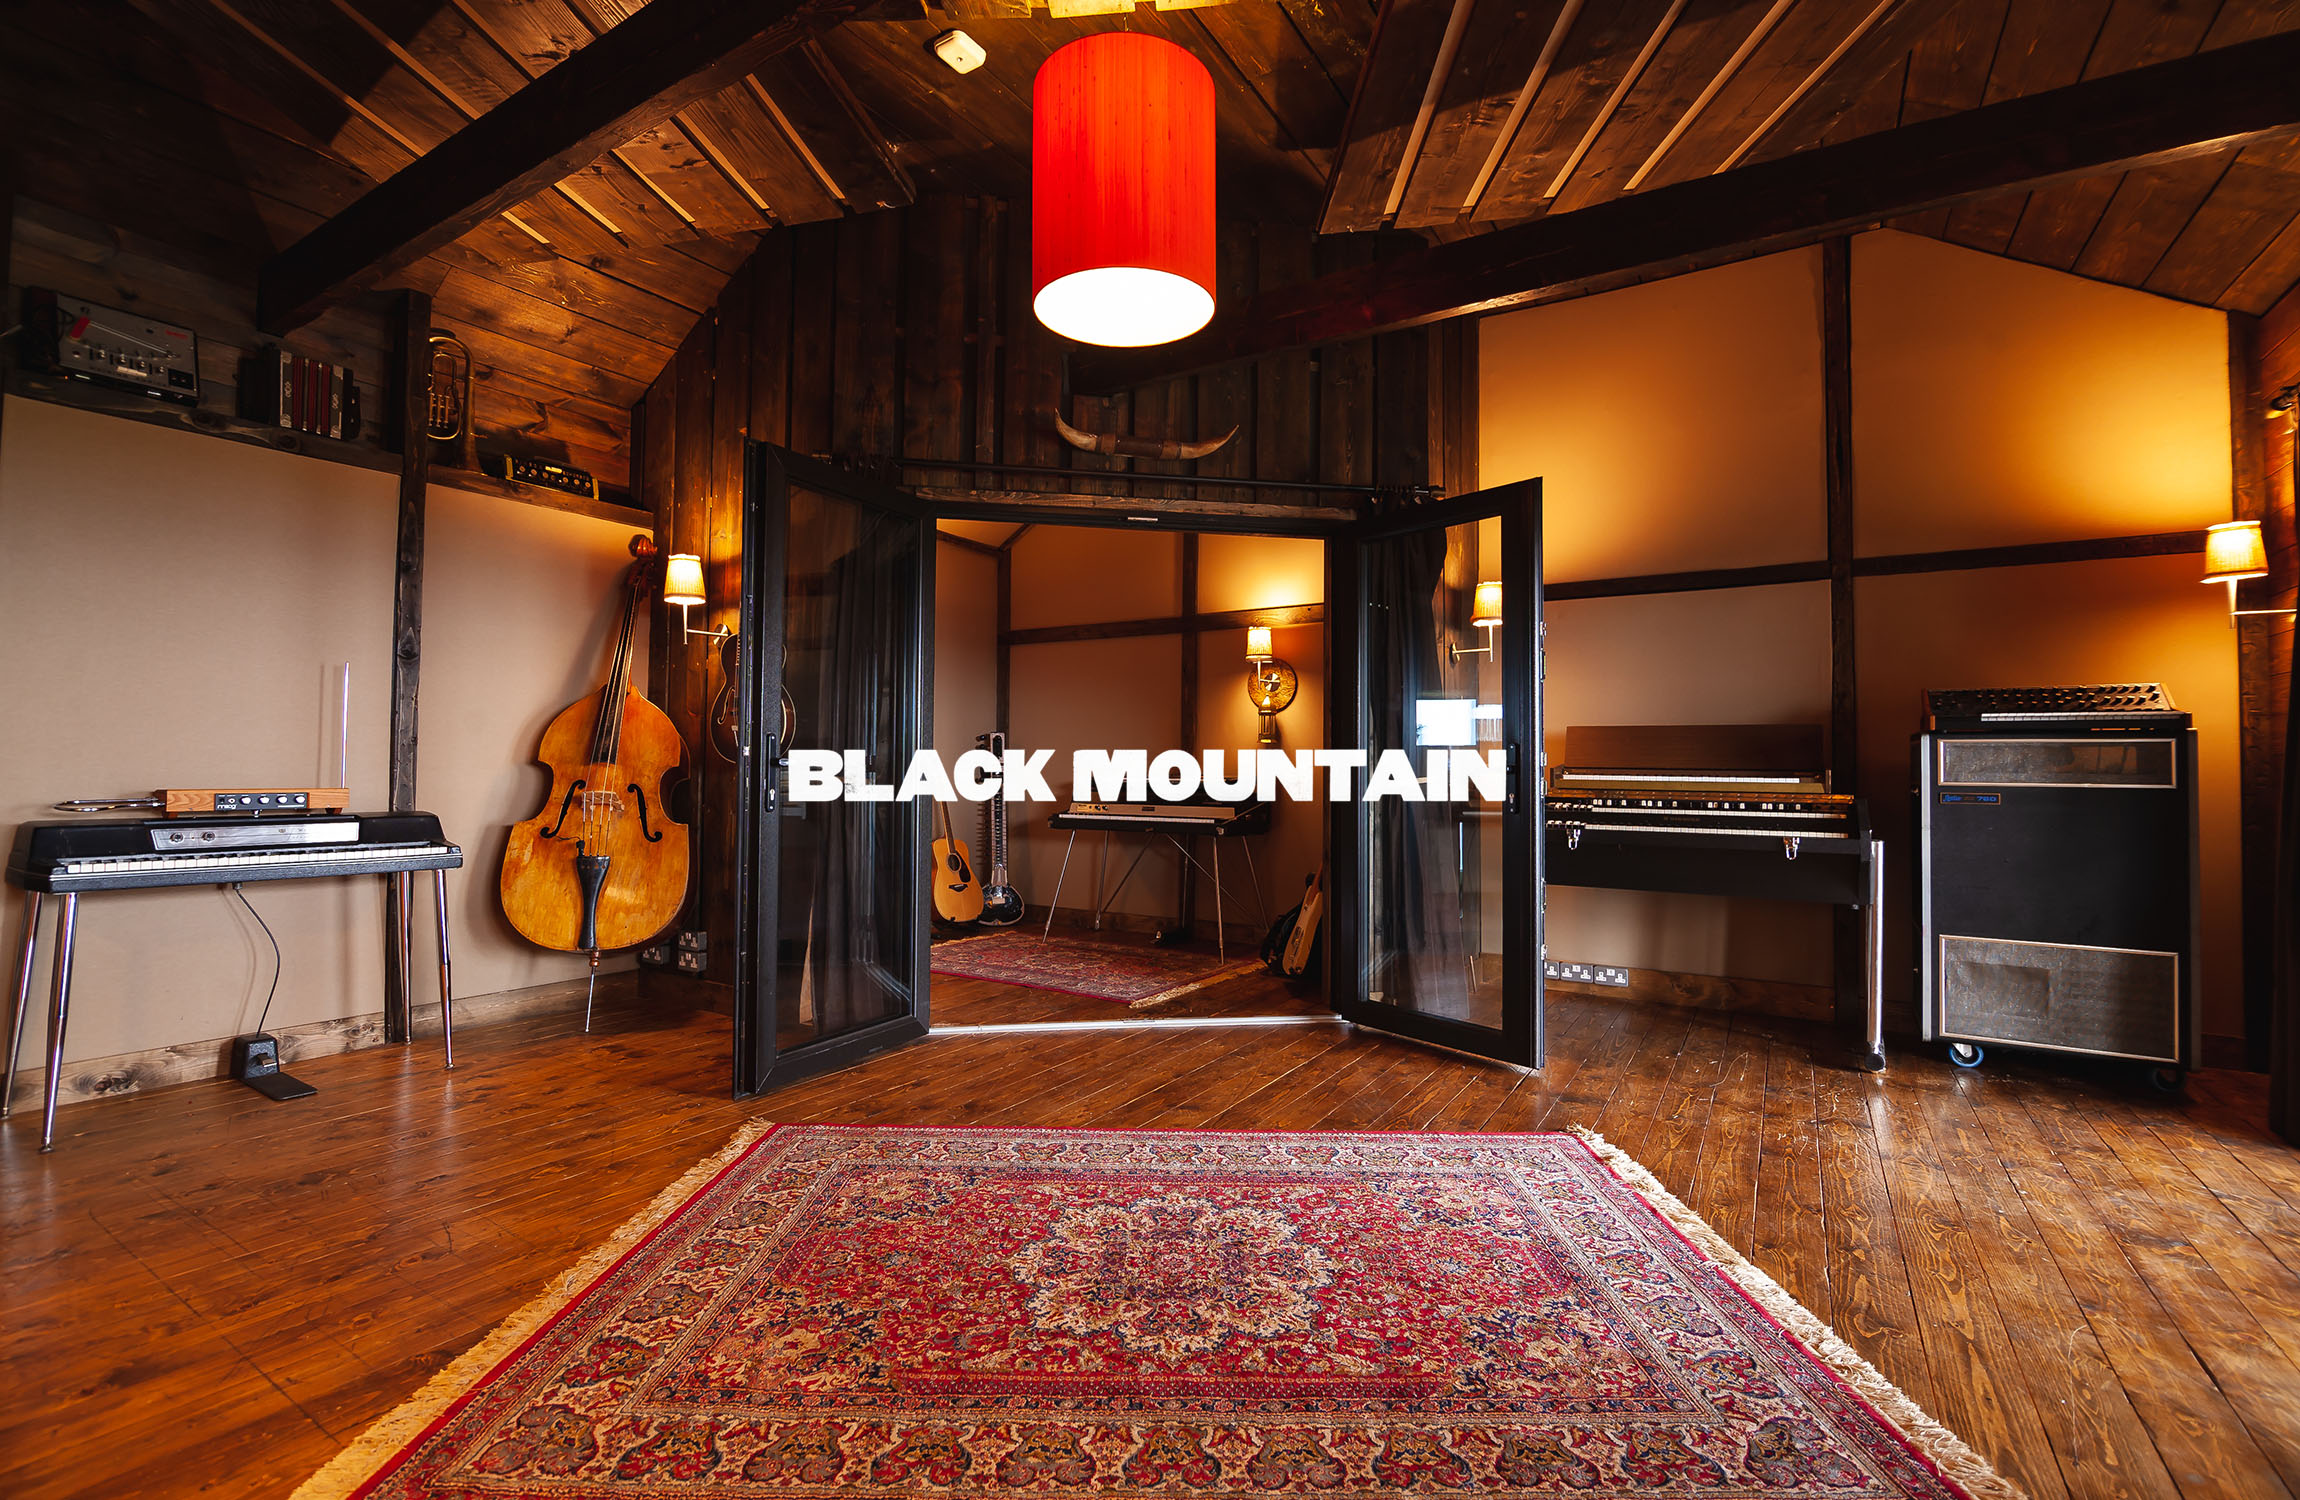 Black Mountain Studios